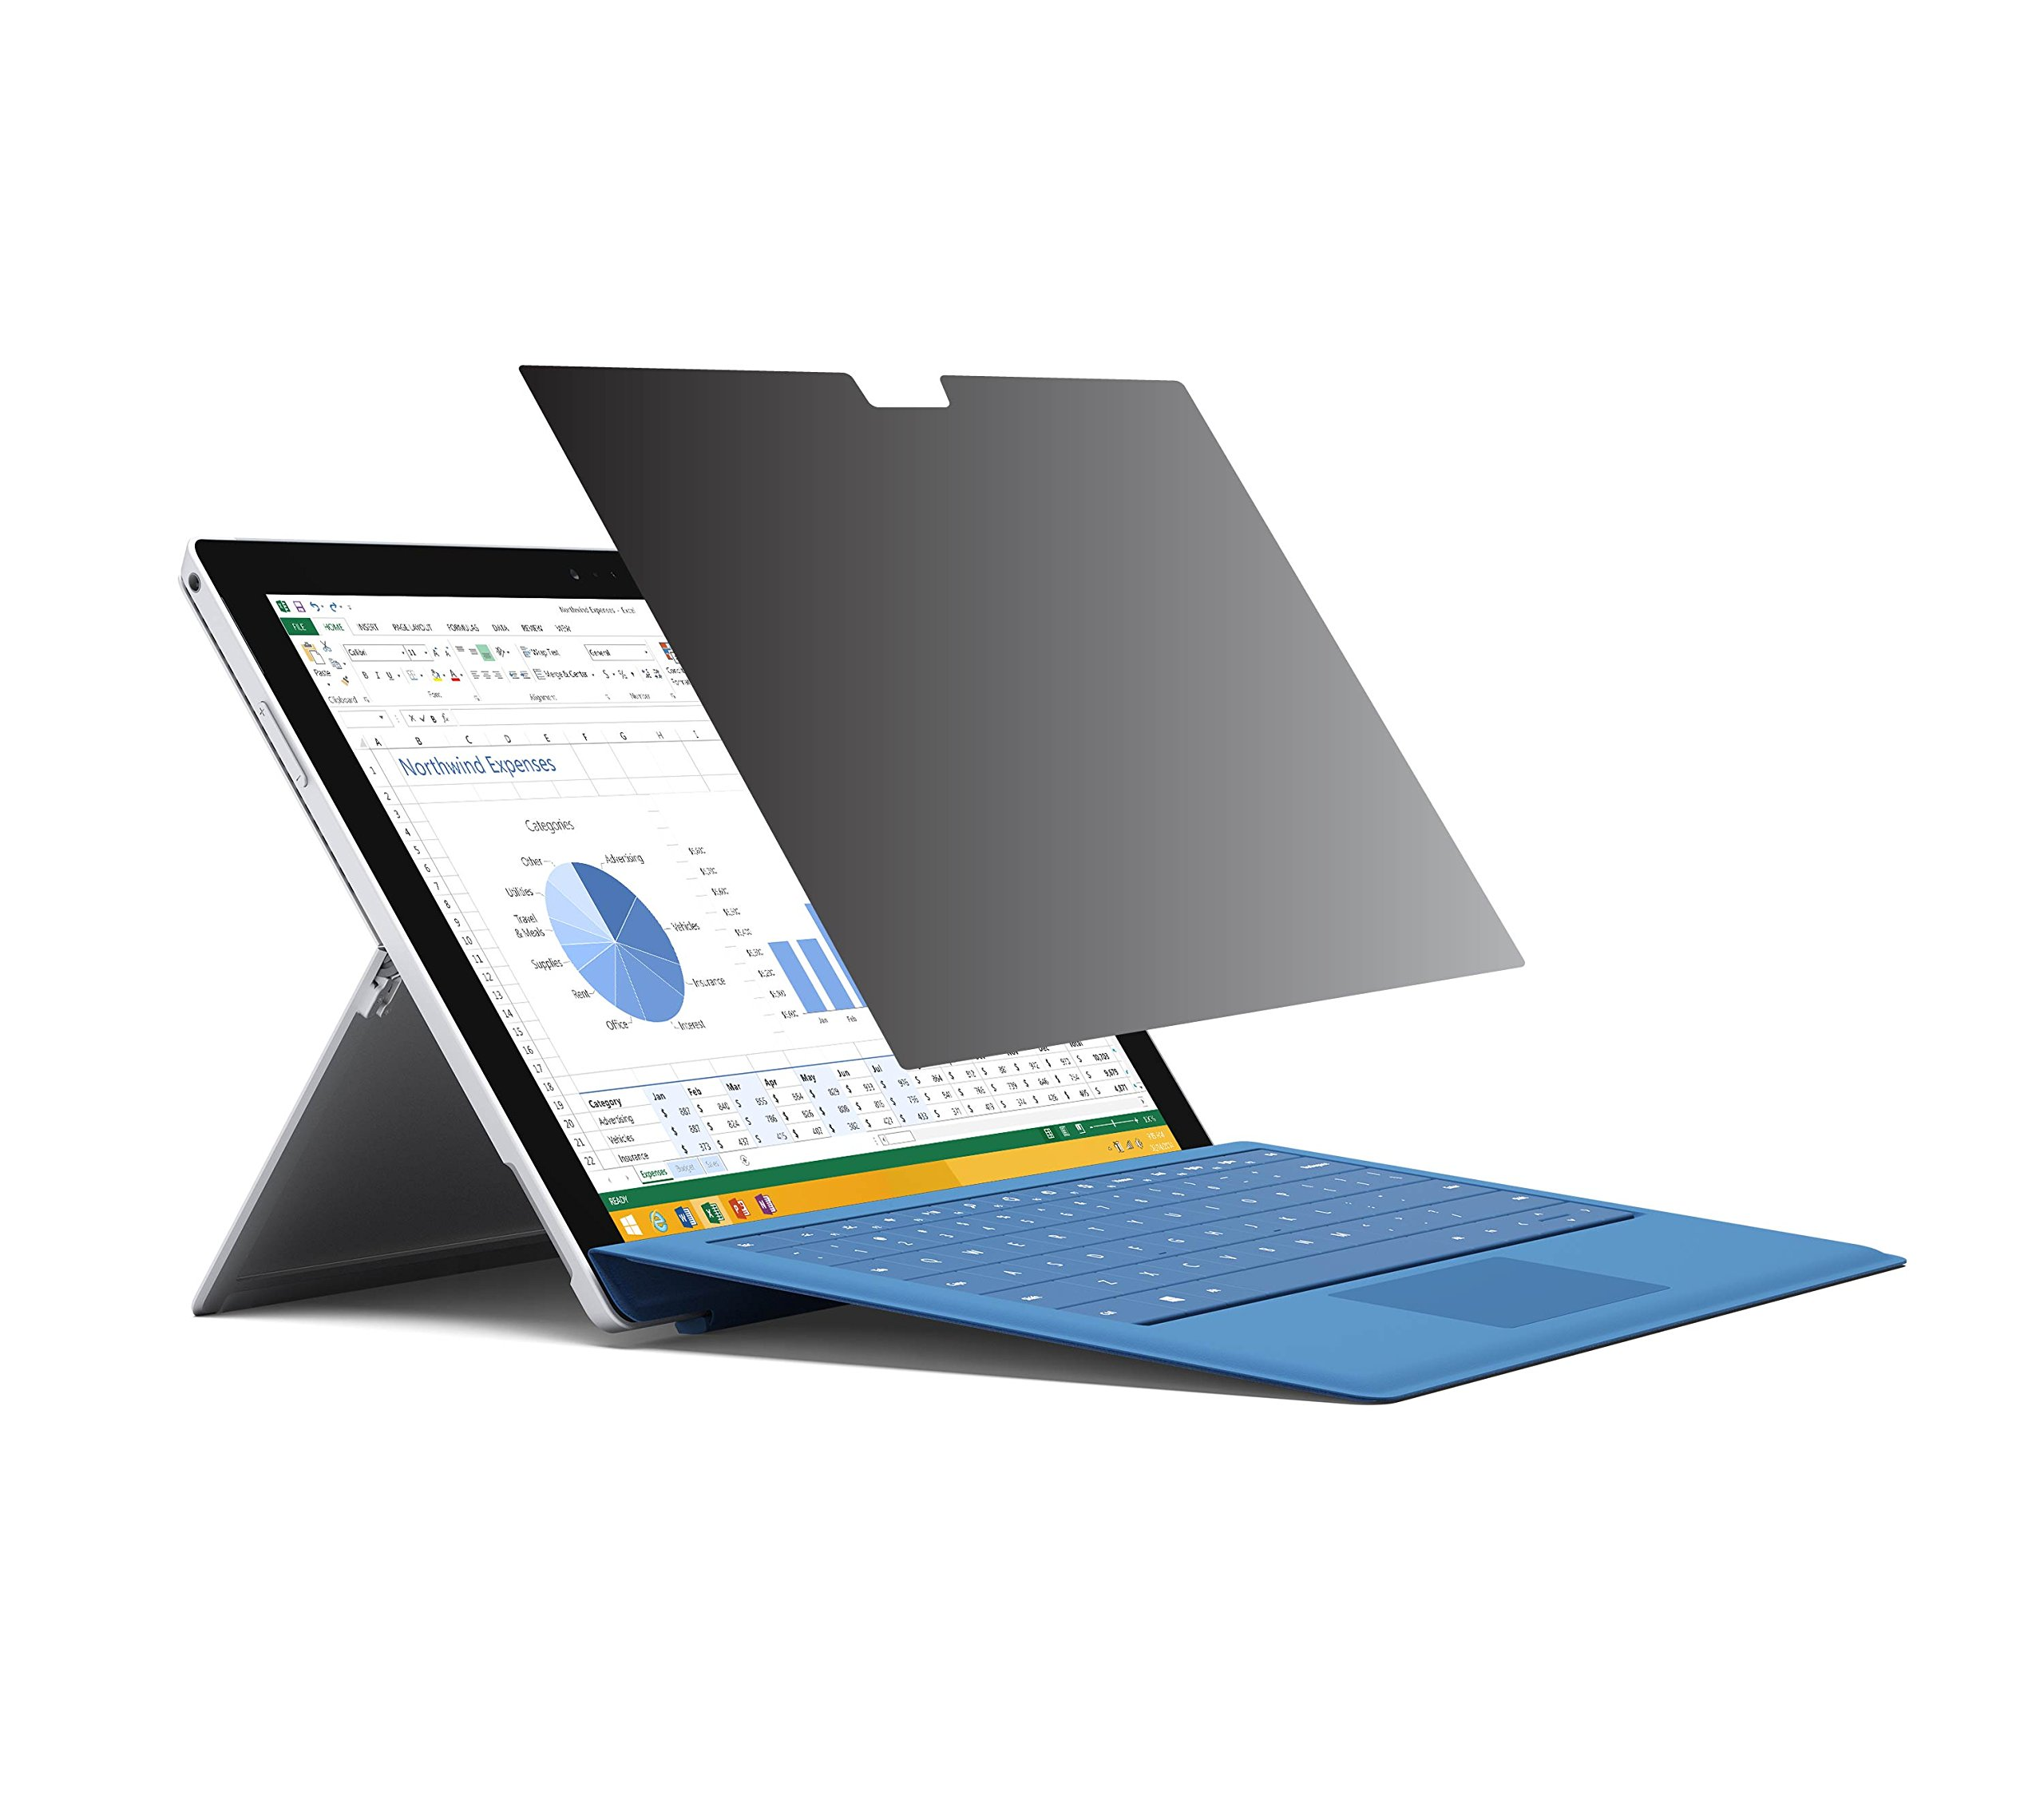 Privacy Screen Protector (360 degree privacy protection) for Microsoft Surface Pro 4 and New Surface Pro 2017 (Surface Pro 5)